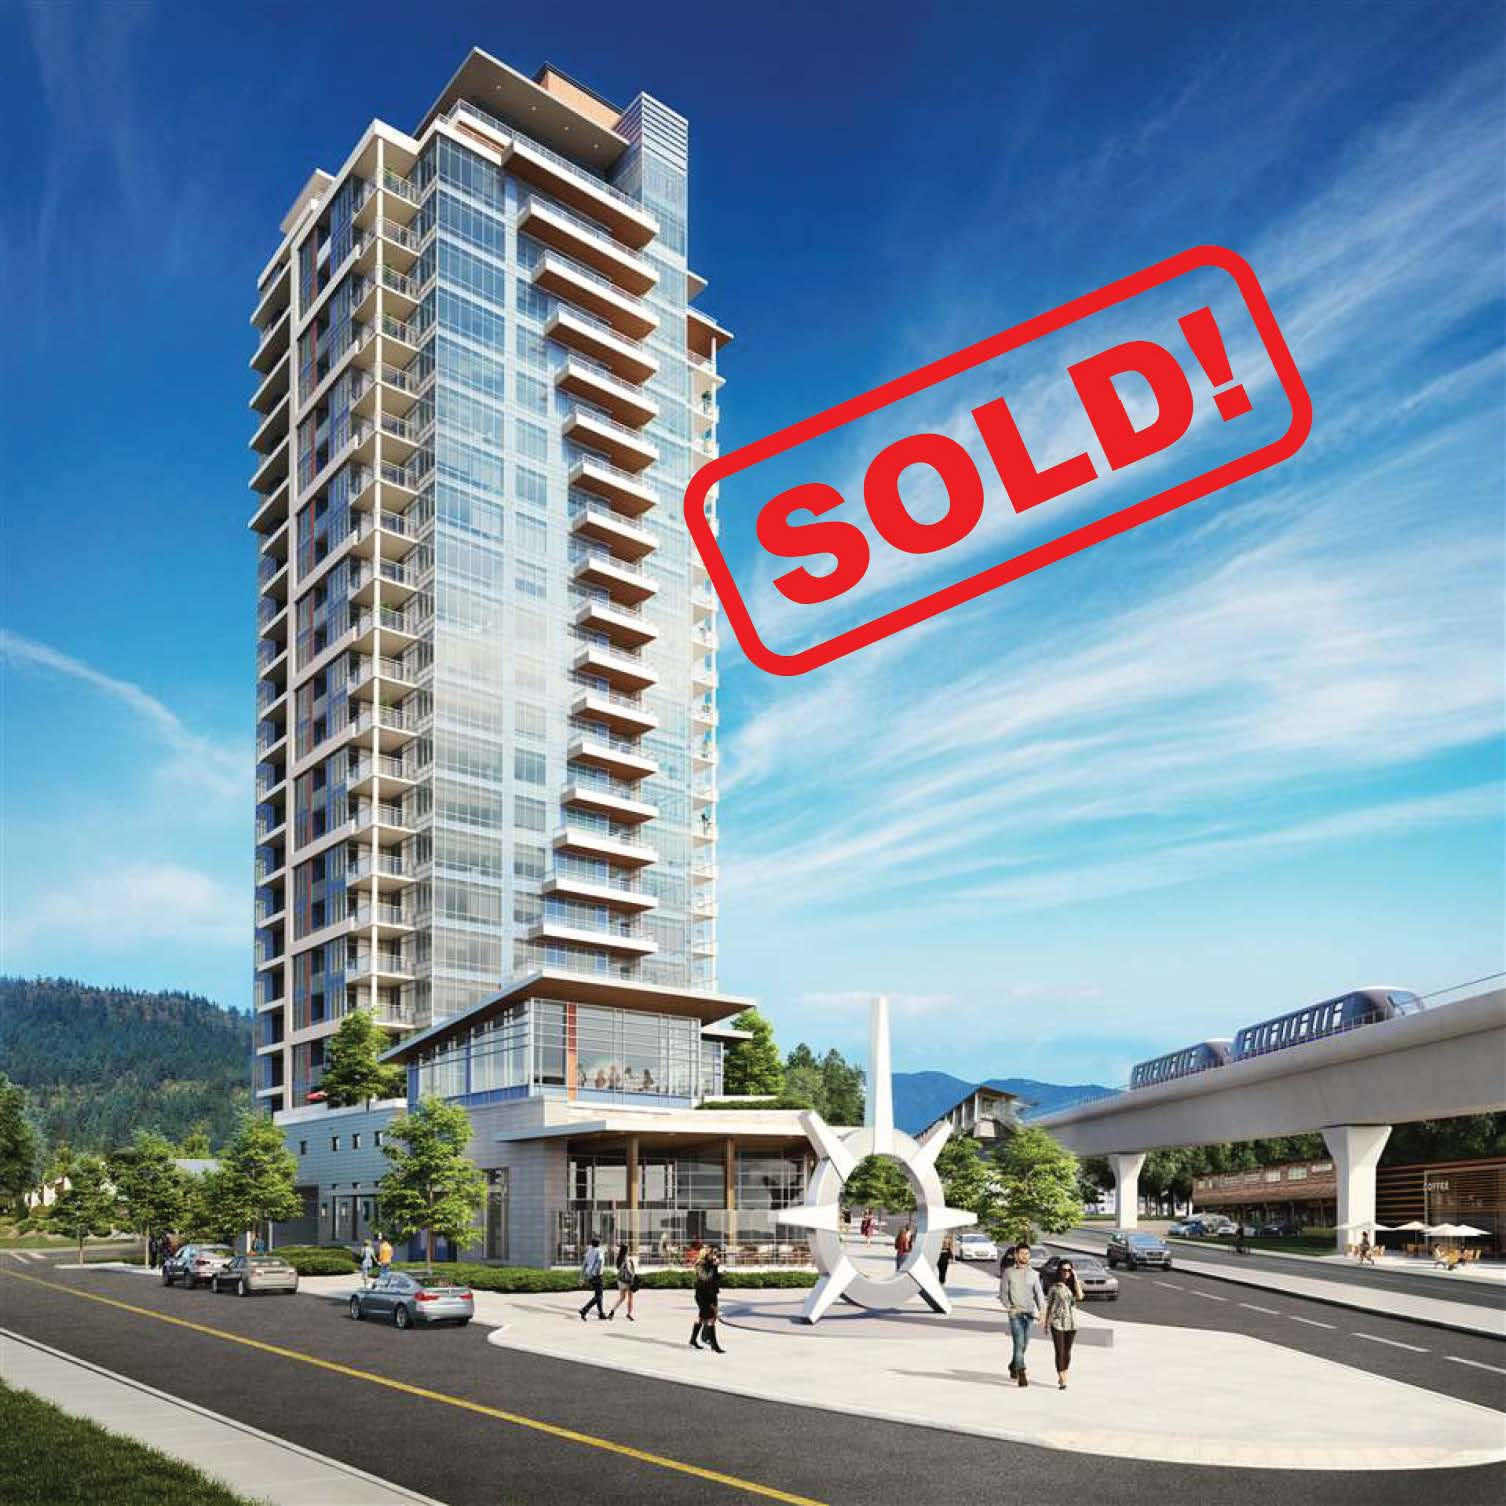 803-509 Clarke Road   sold for: $489,900  2 Bed | 1 Bath | 643 SF